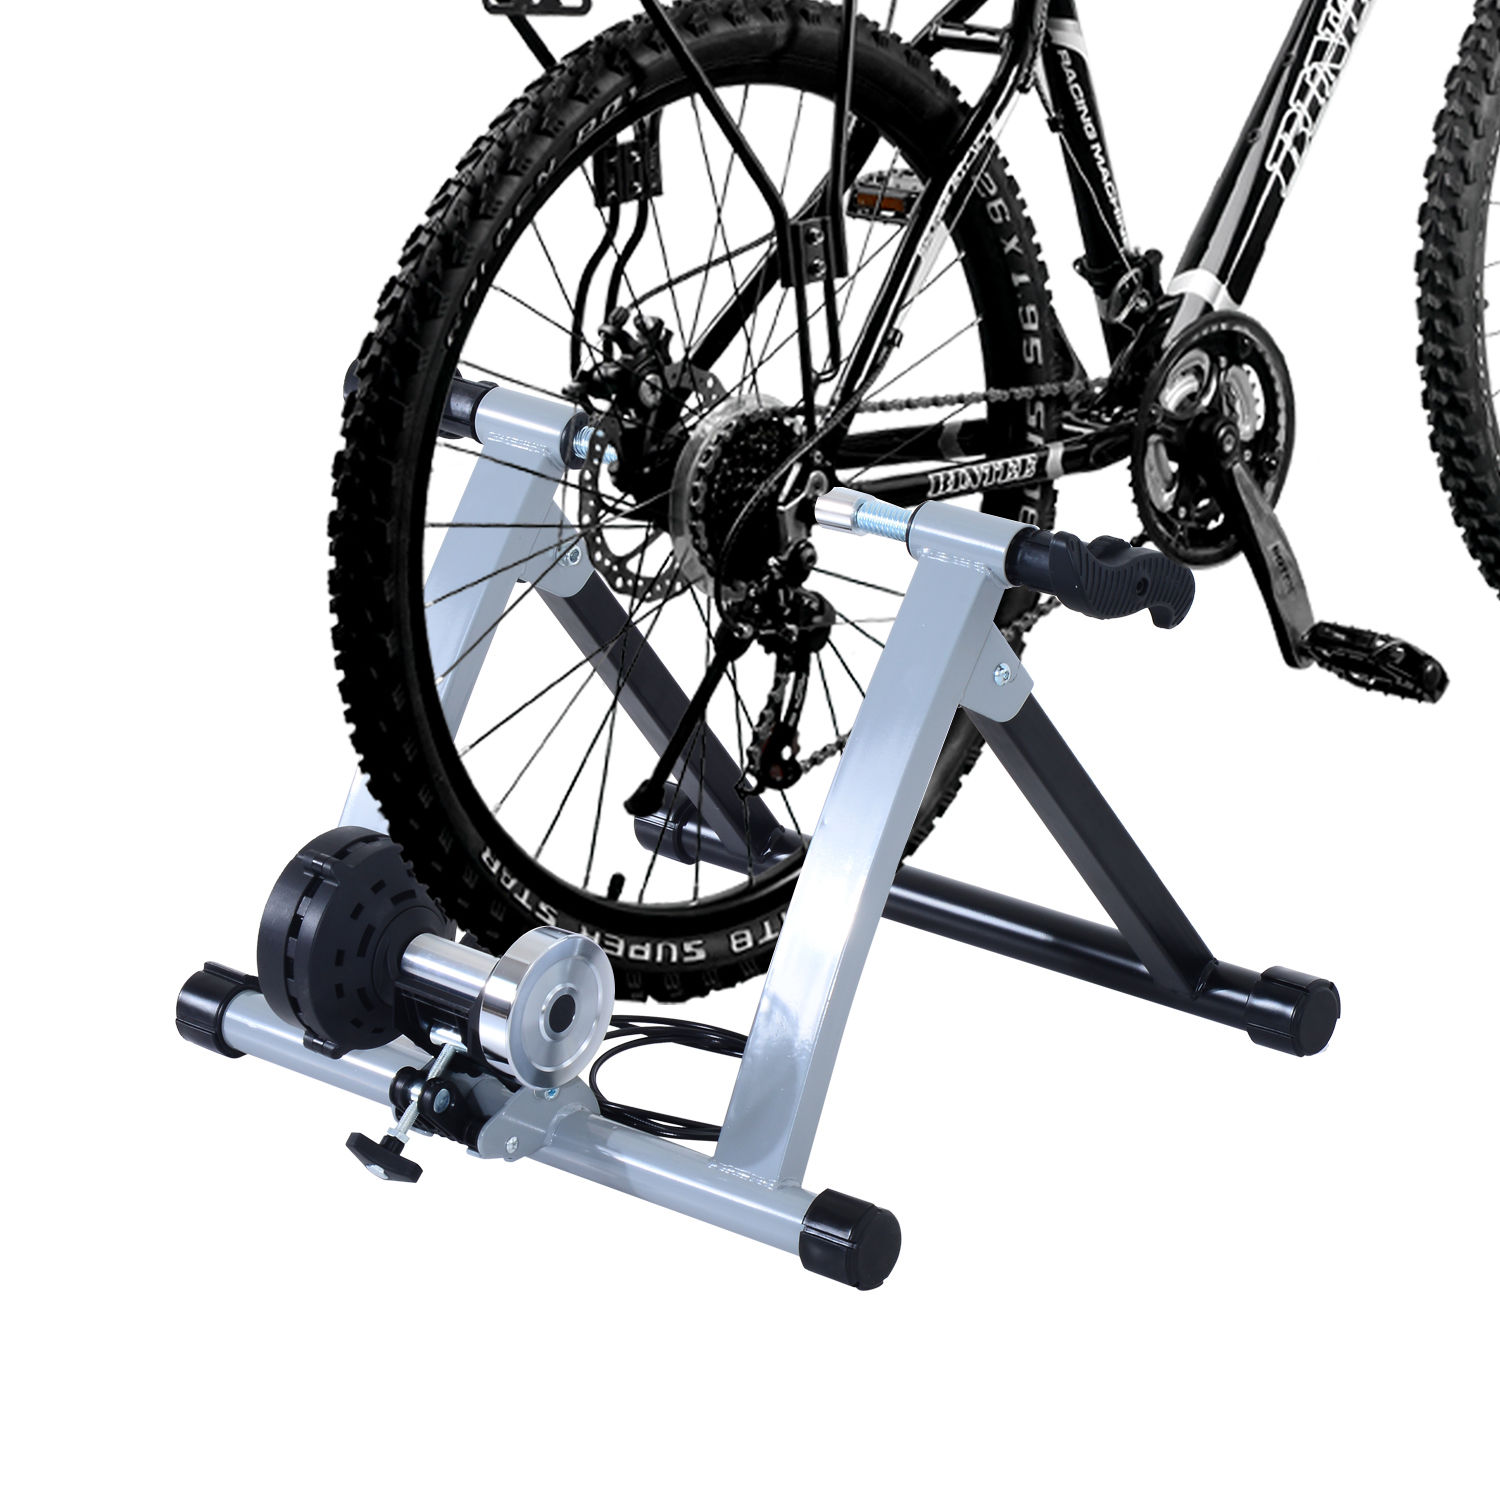 rollentrainer rennrad fahrrad heimtrainer magnetbremse. Black Bedroom Furniture Sets. Home Design Ideas